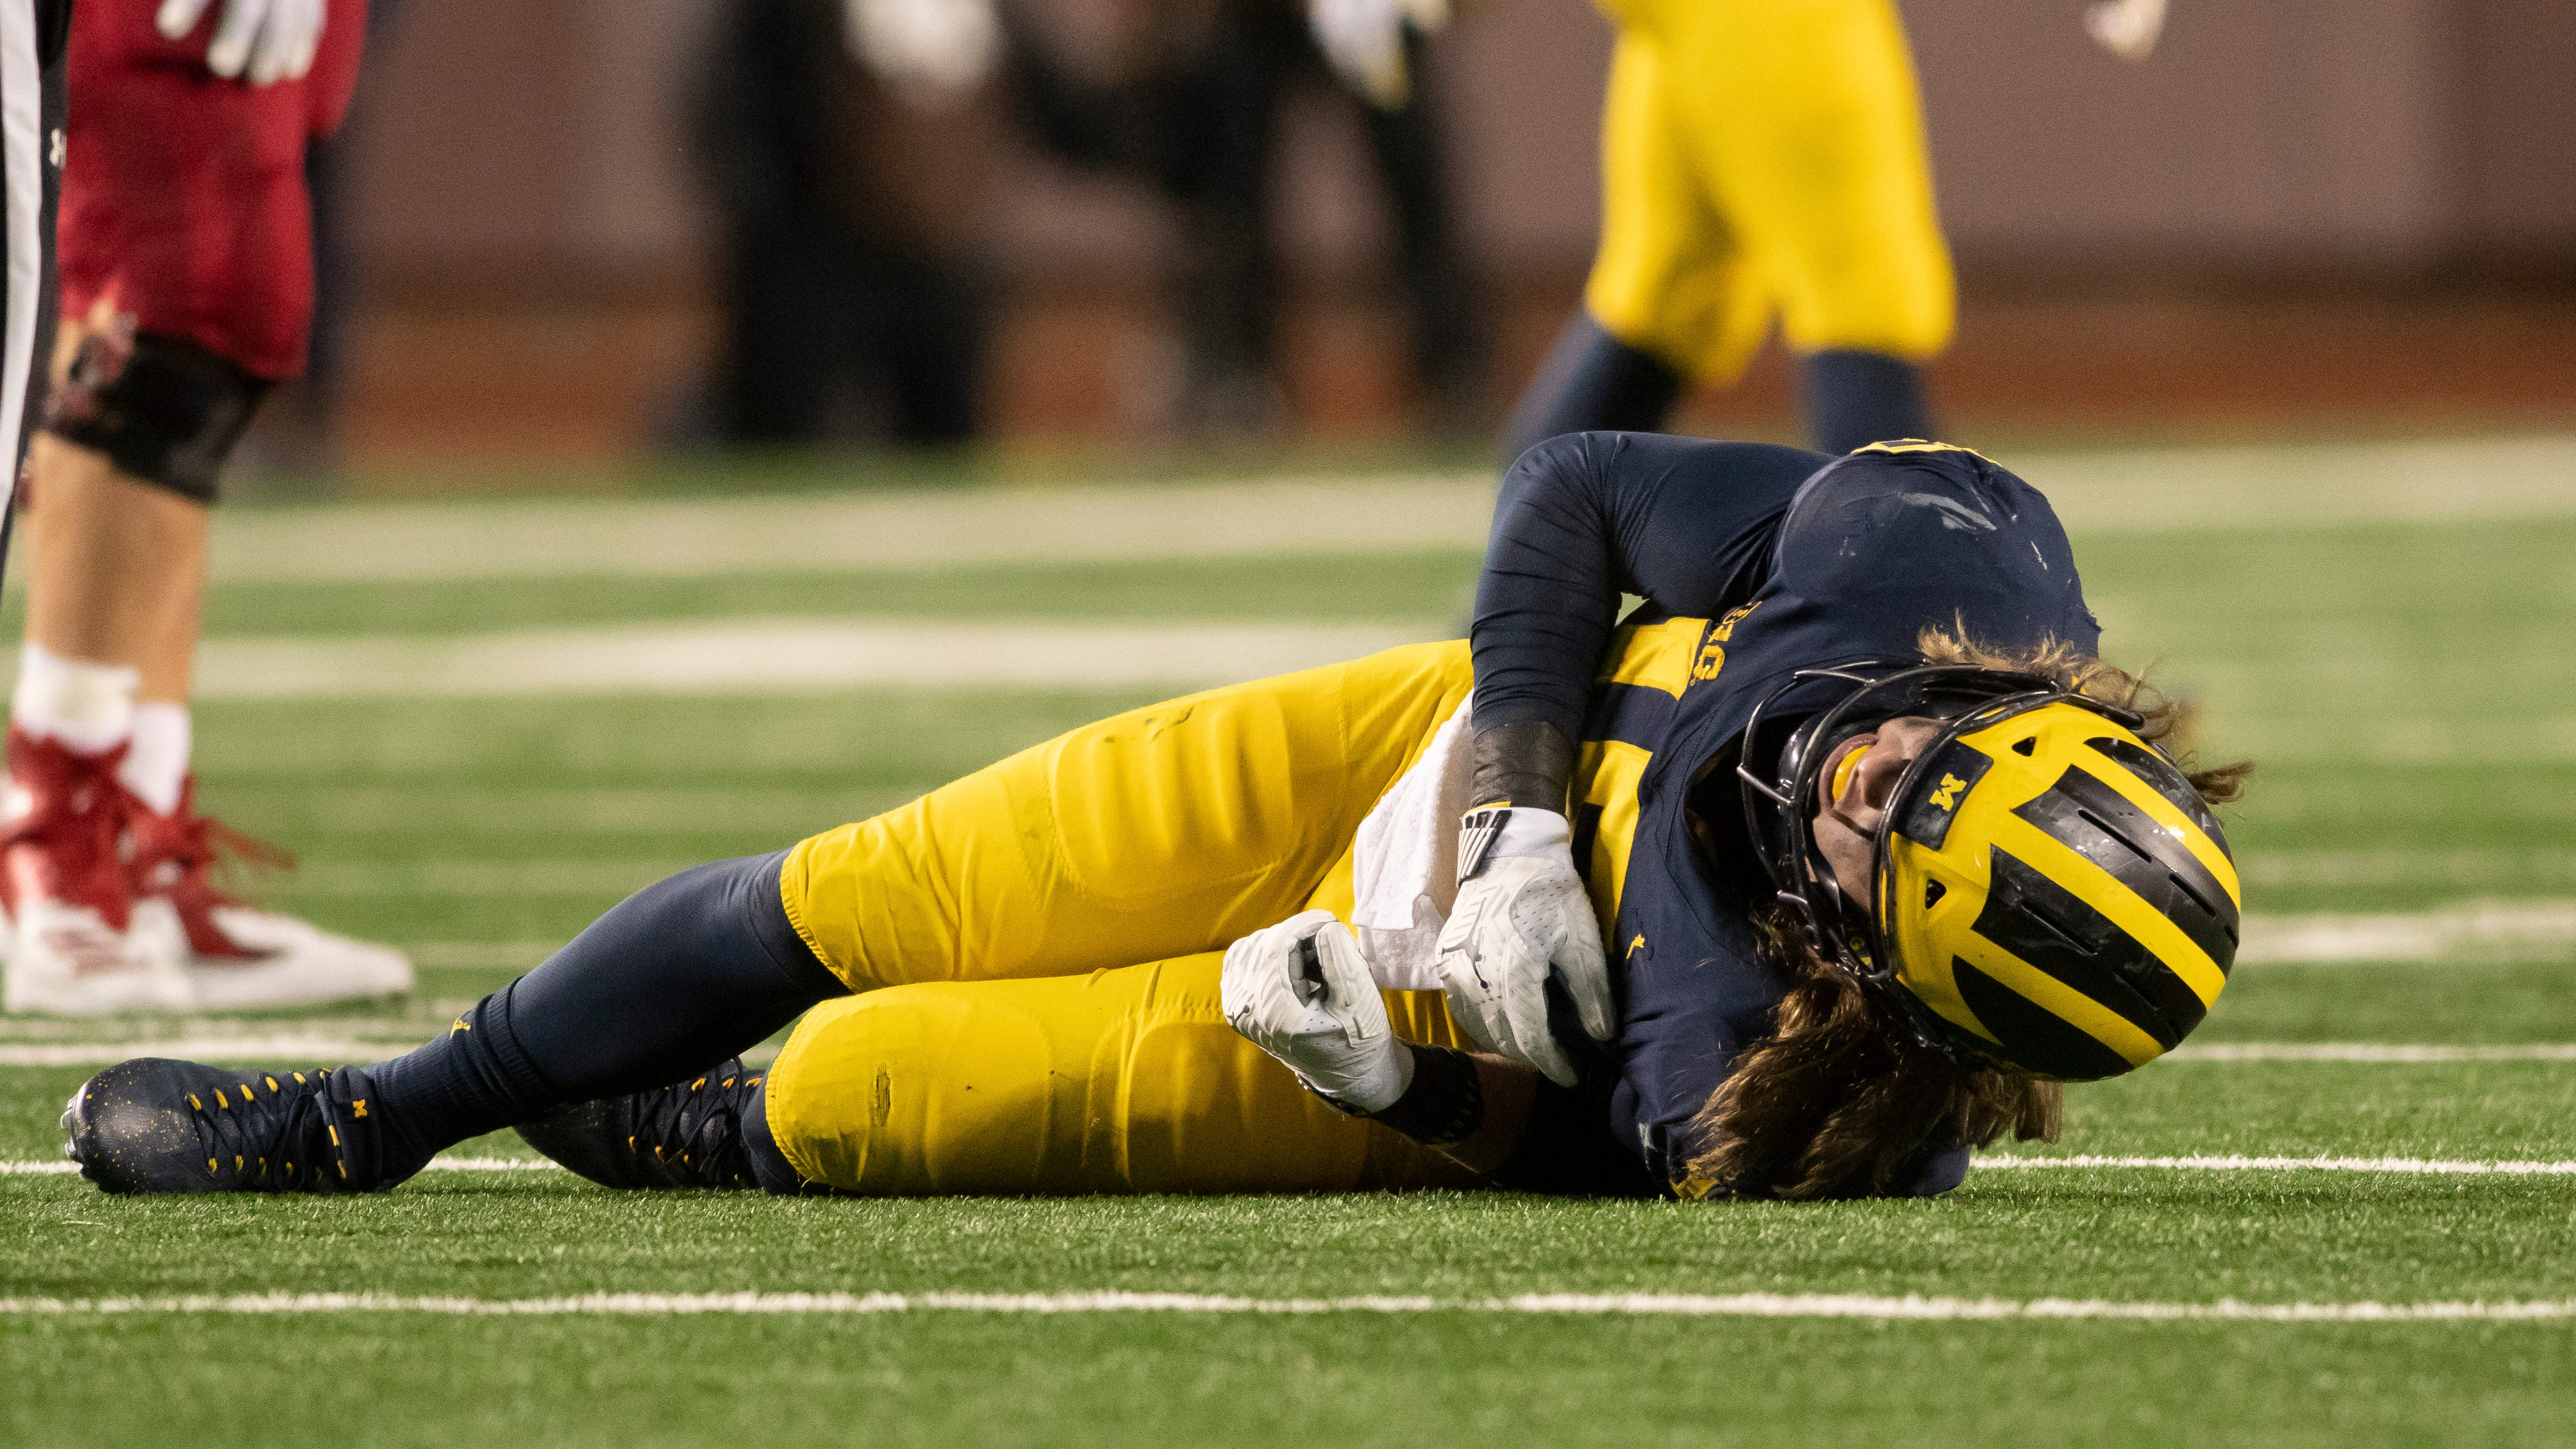 Michigan defensive lineman Chase Winovich lays on the ground after being injured in the third quarter.  Winovich left the game and did not return.